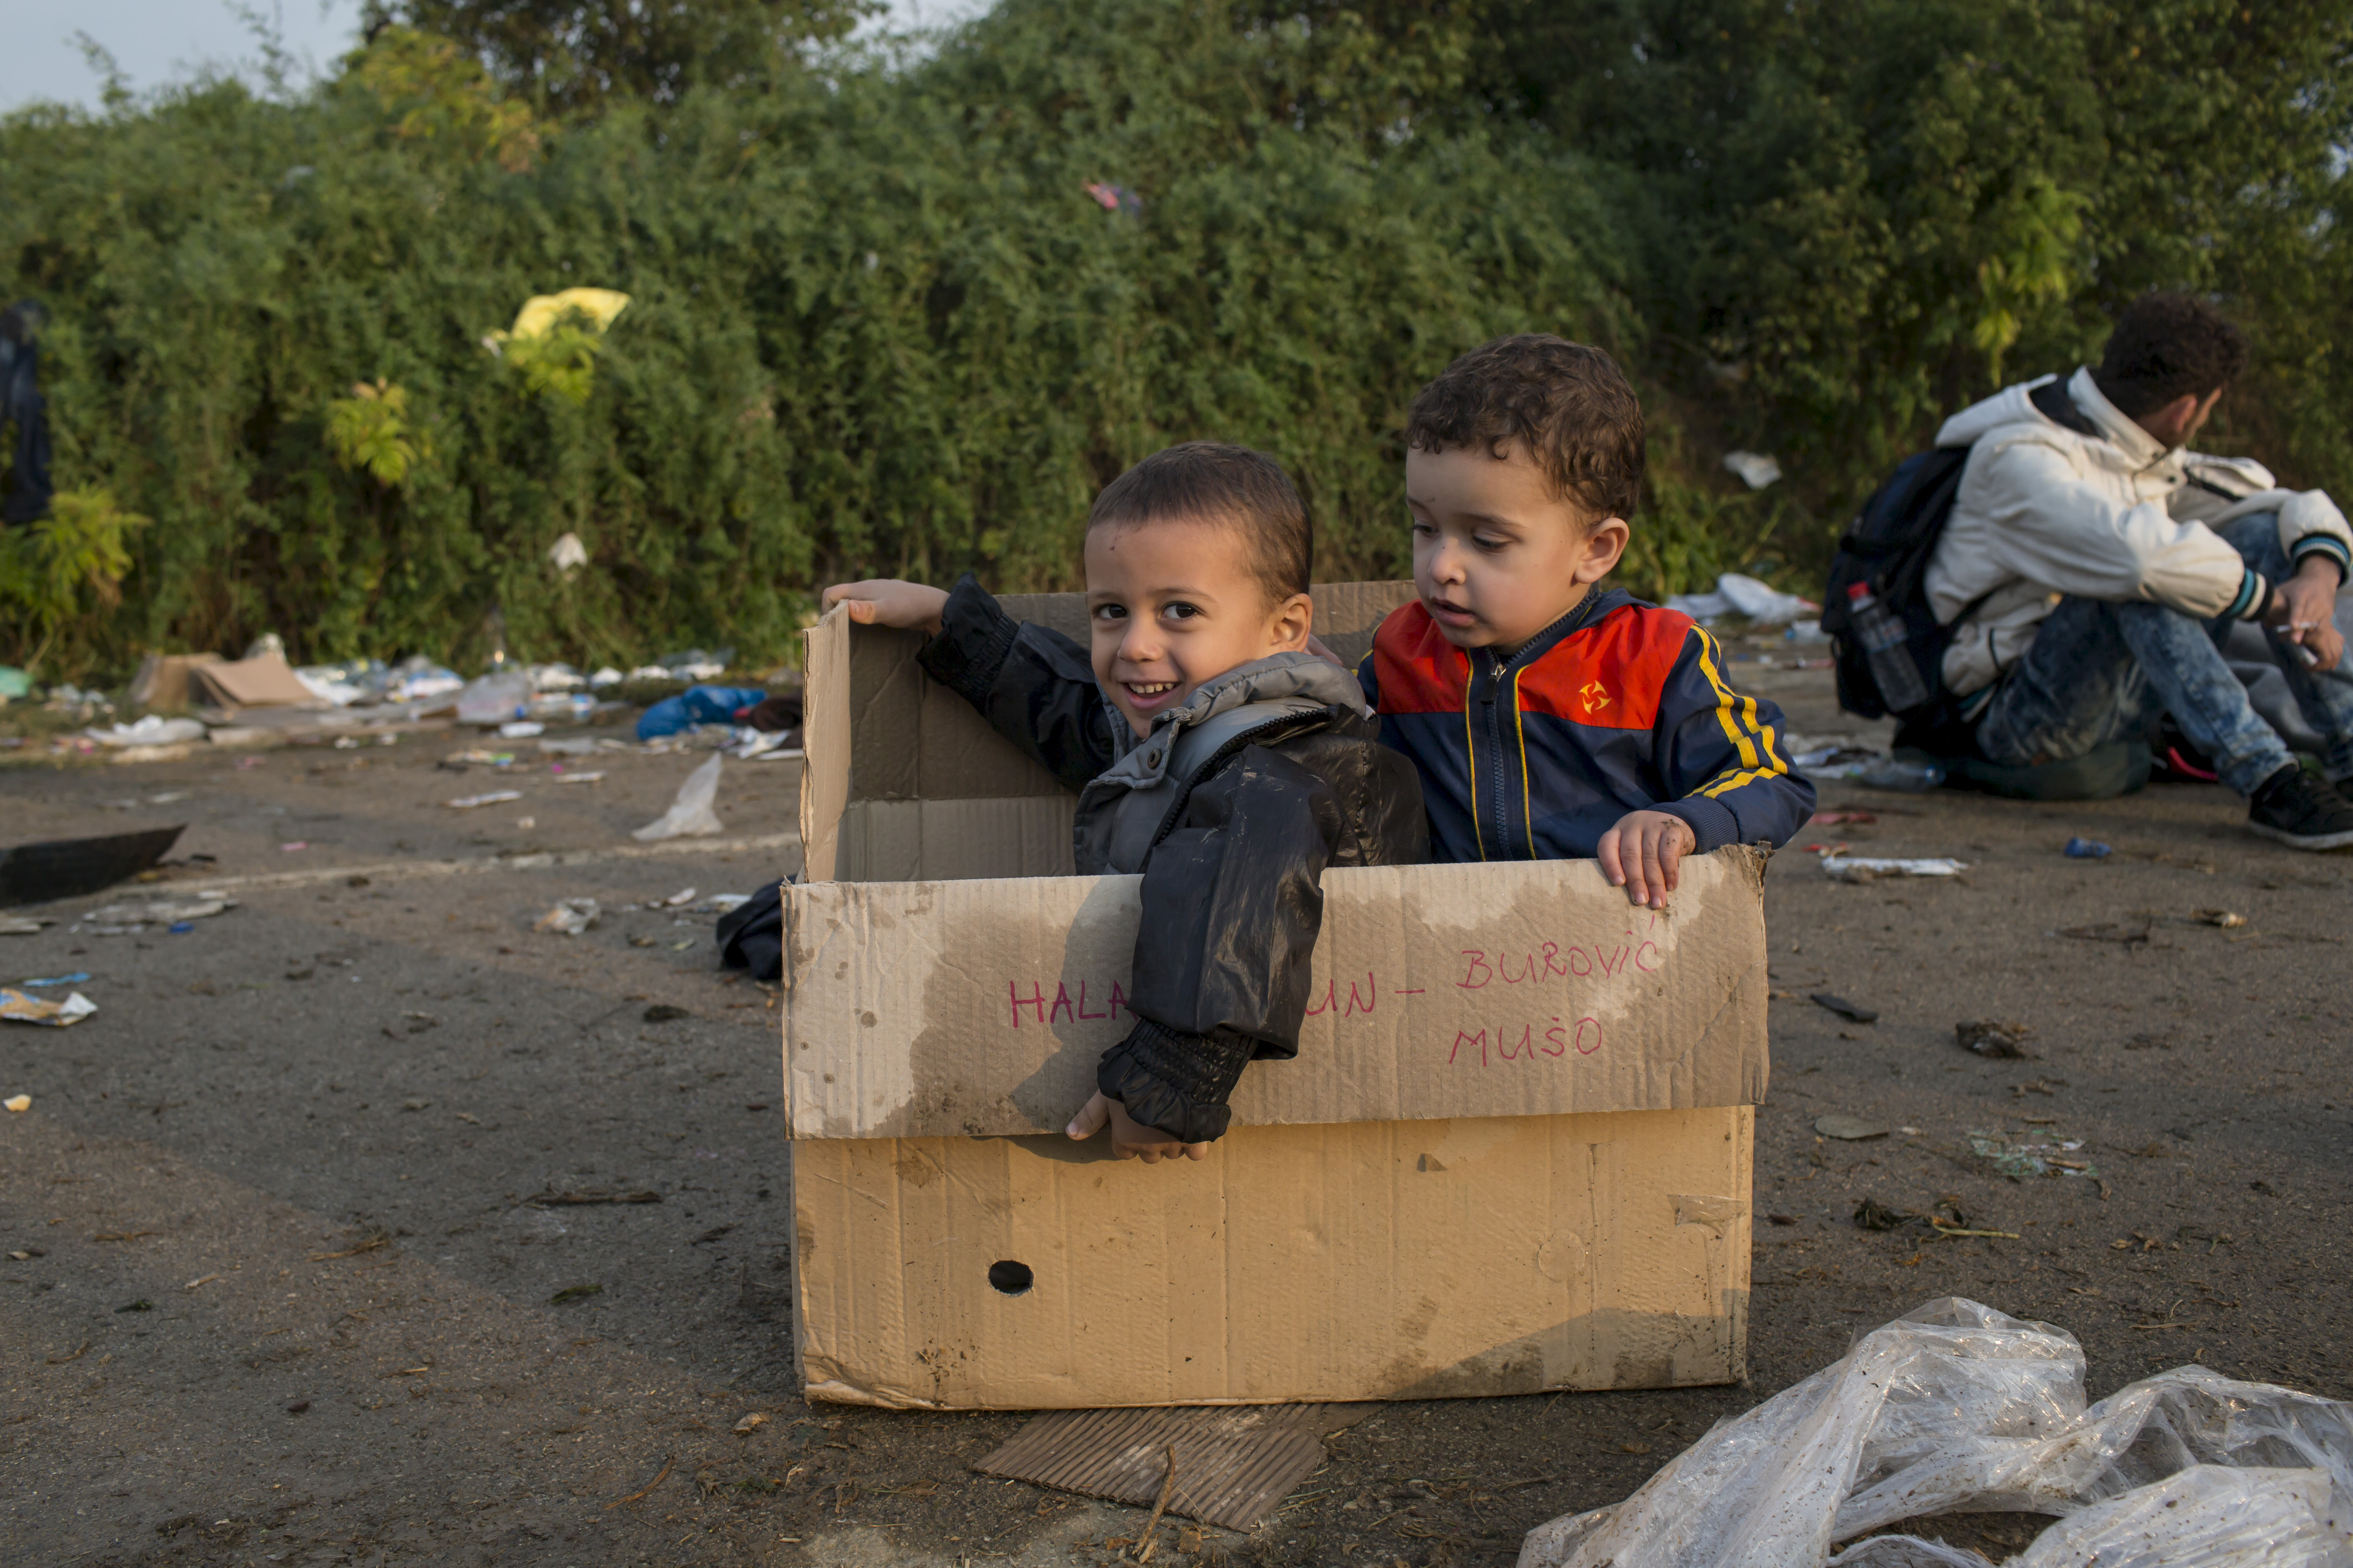 Children sit in a box as they wait to board buses after crossing the border with Serbia, near the village of Babska, Croatia, on Sept. 24, 2015. Photo by Marko Djurica/Reuters